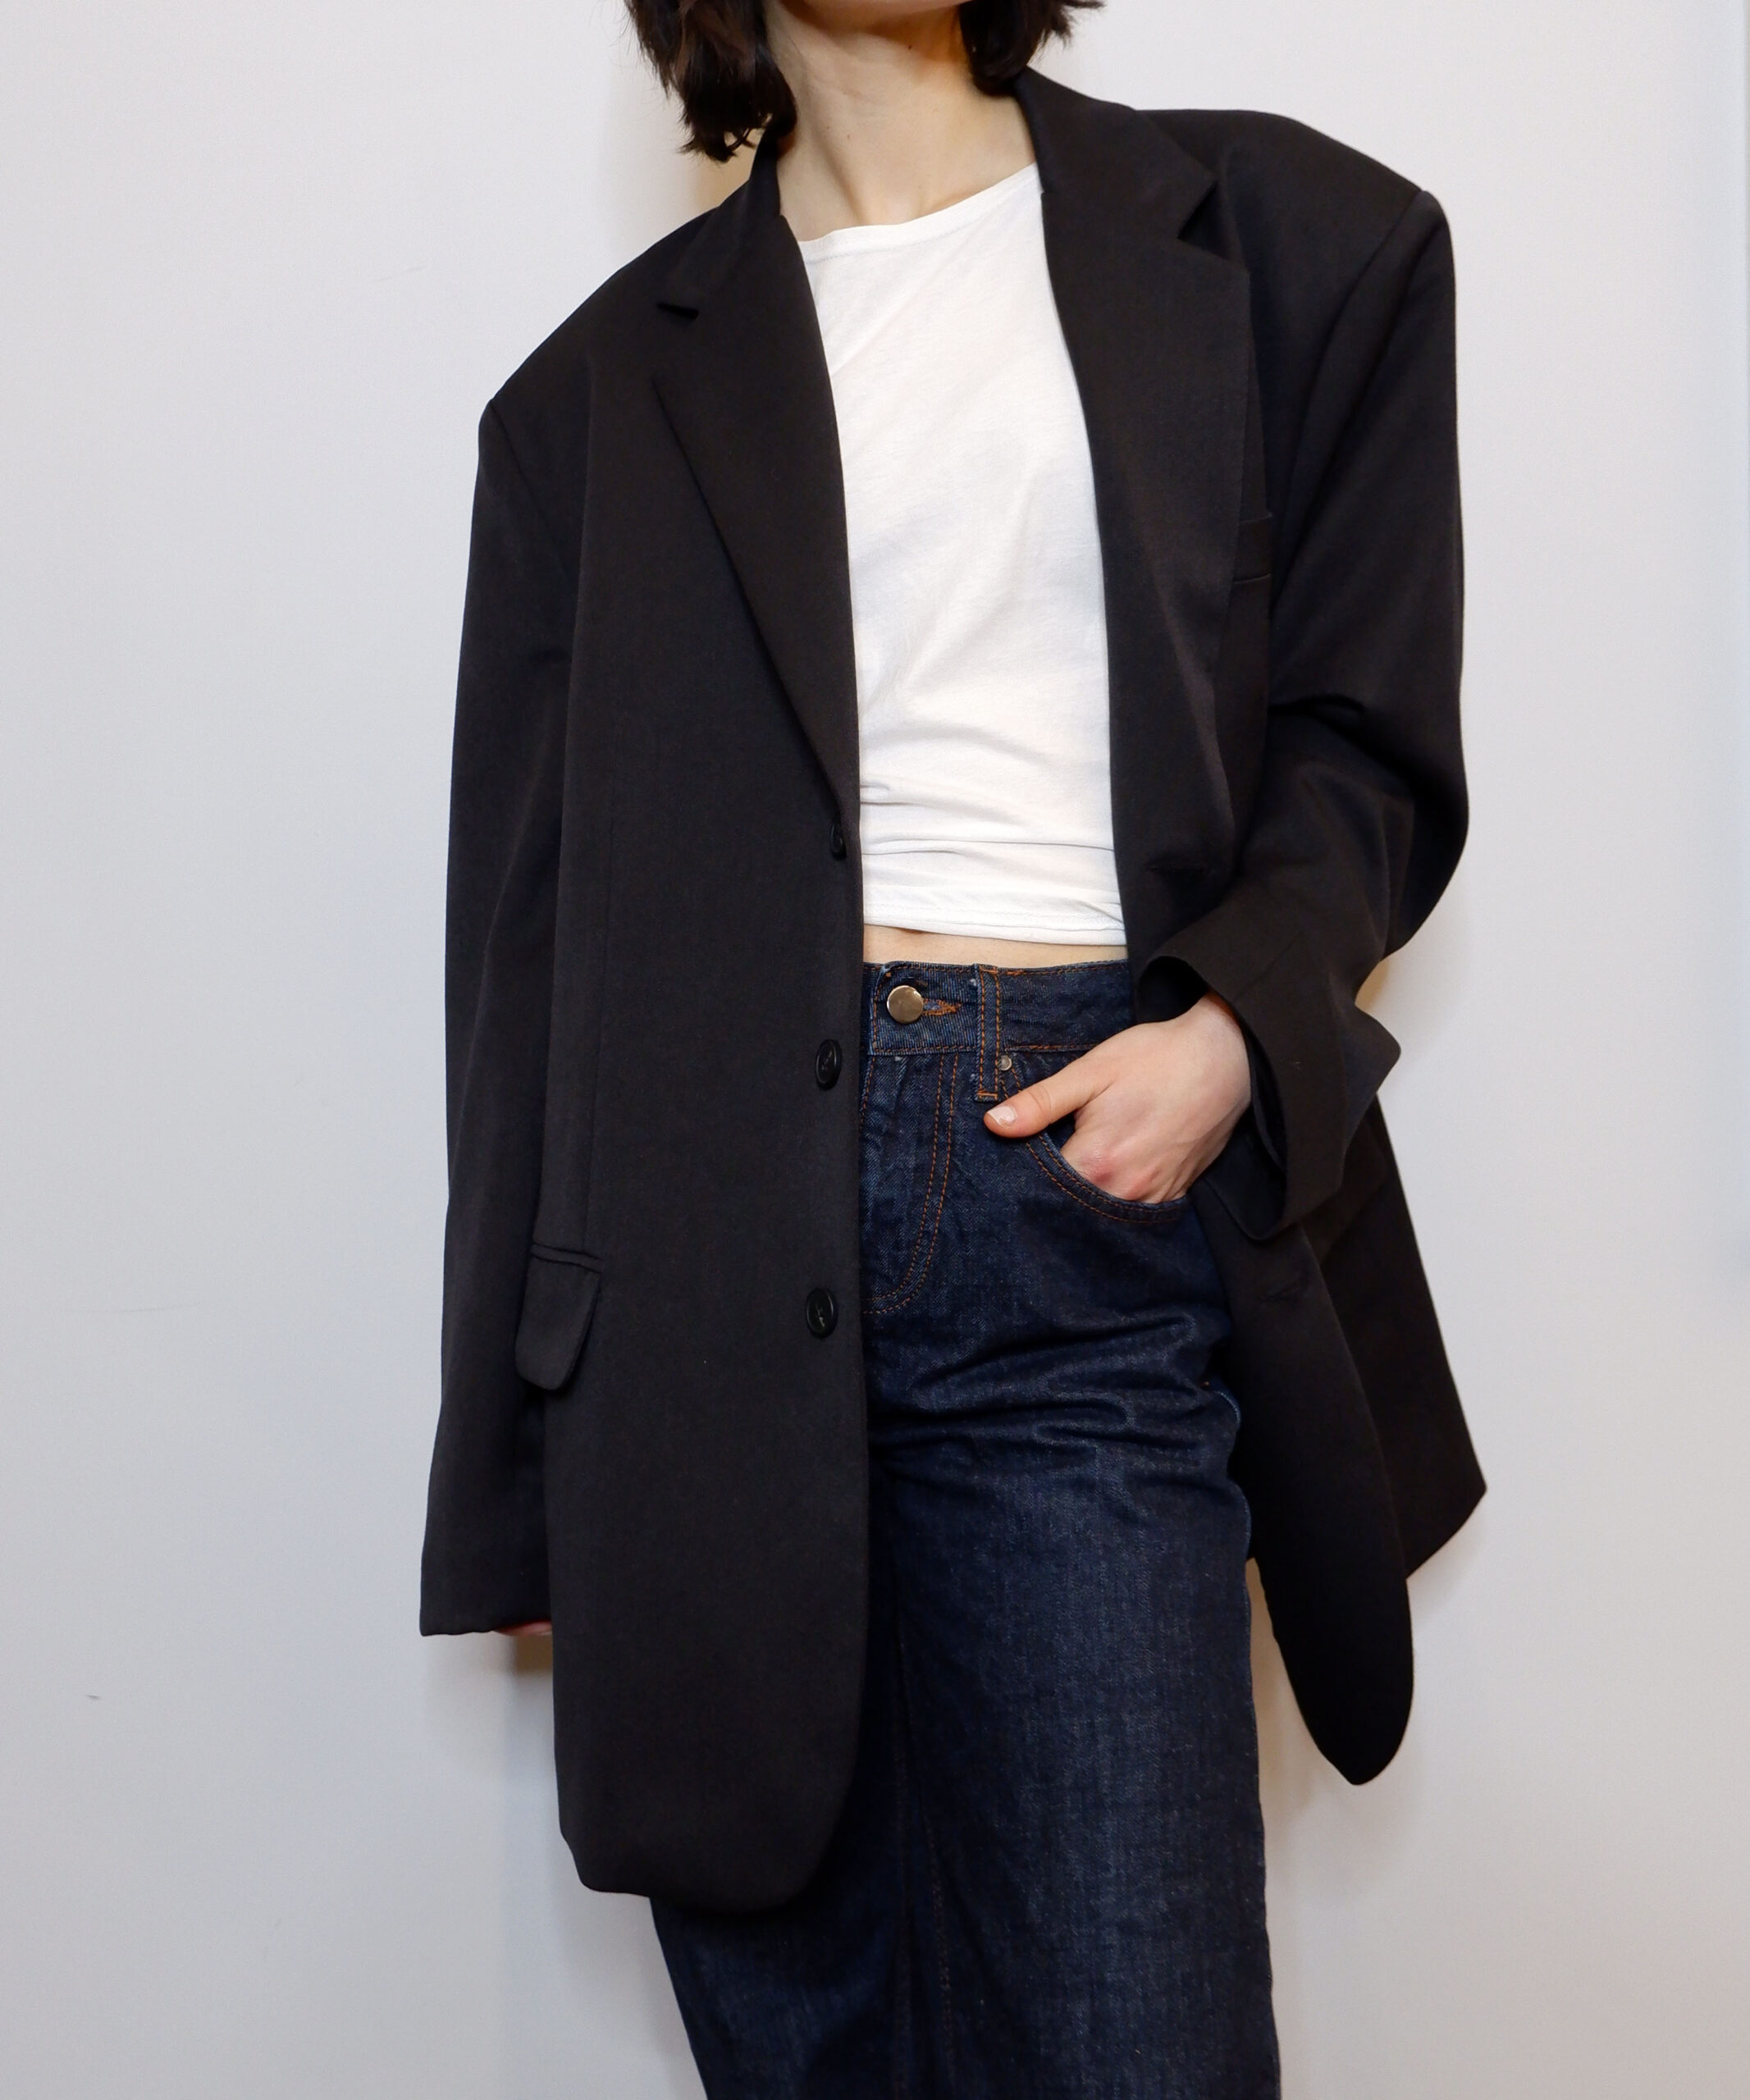 Super oversized blazer in black from The Dallant, Korean fashion online shopping site, fashion item for transitional weather in korea